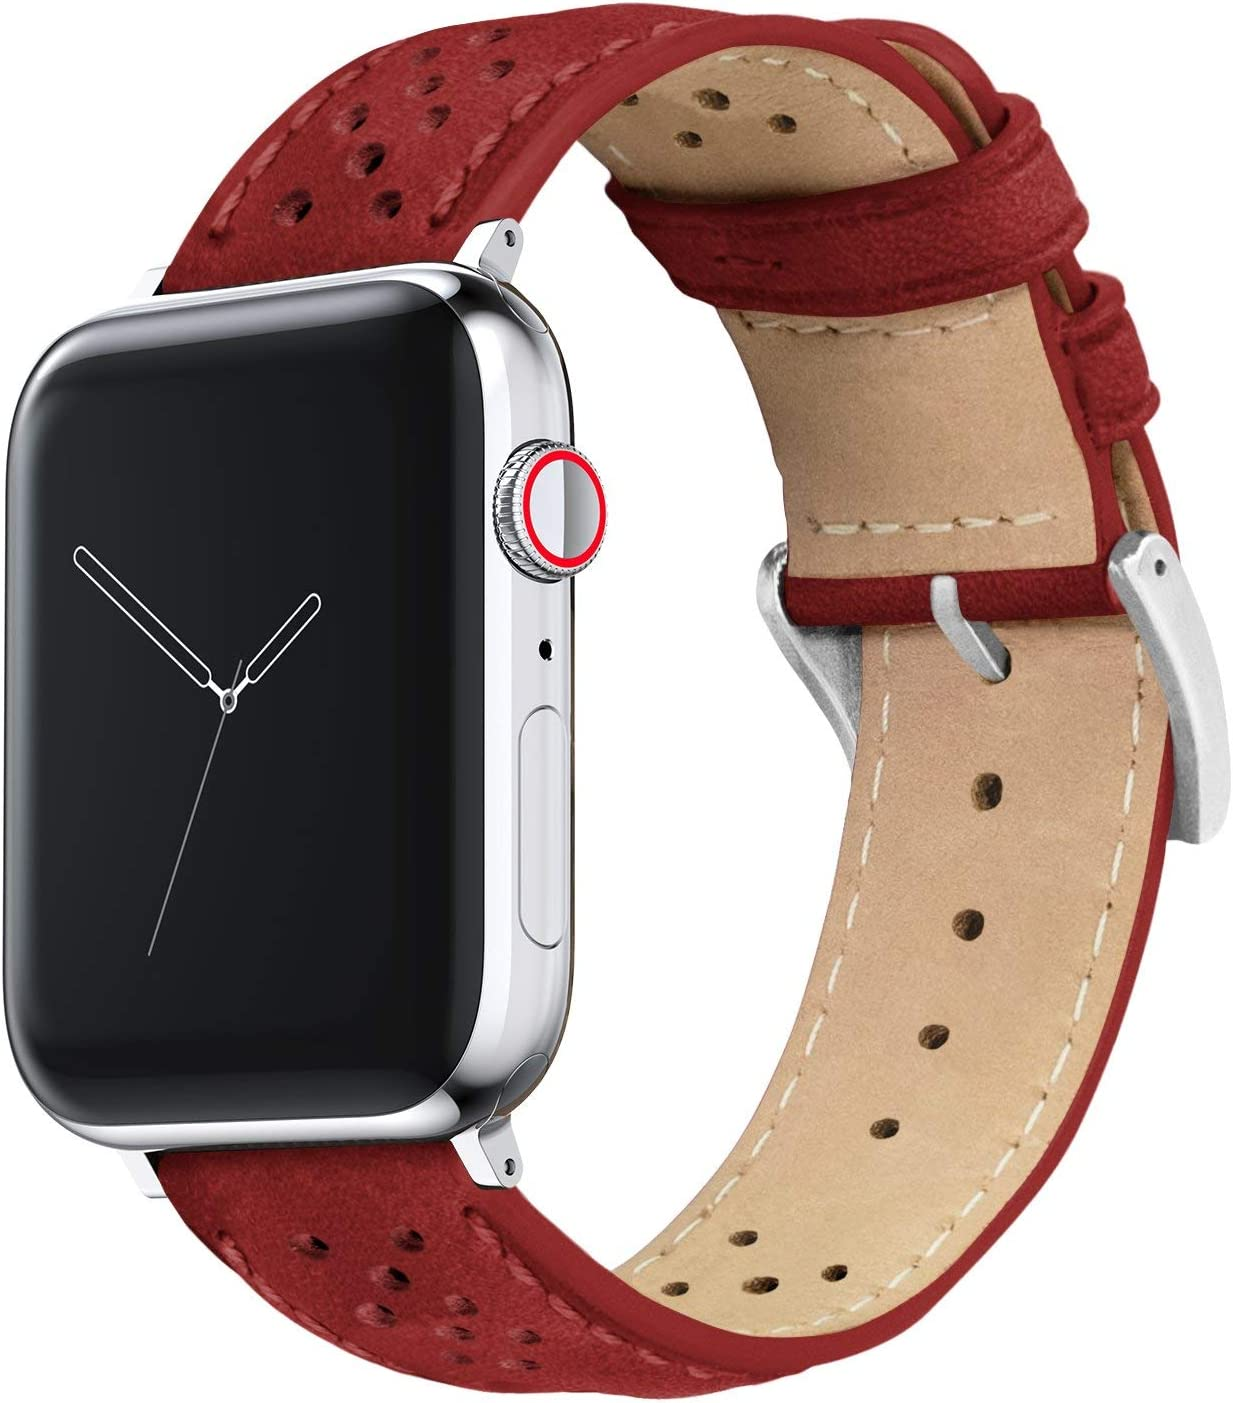 42mm/44mm Crimson Red - Barton Racing Horween Leather Watch Bands with Integrated Quick Release Spring Bars- Compatible with All Apple Watch Models - Black PVD Hardware